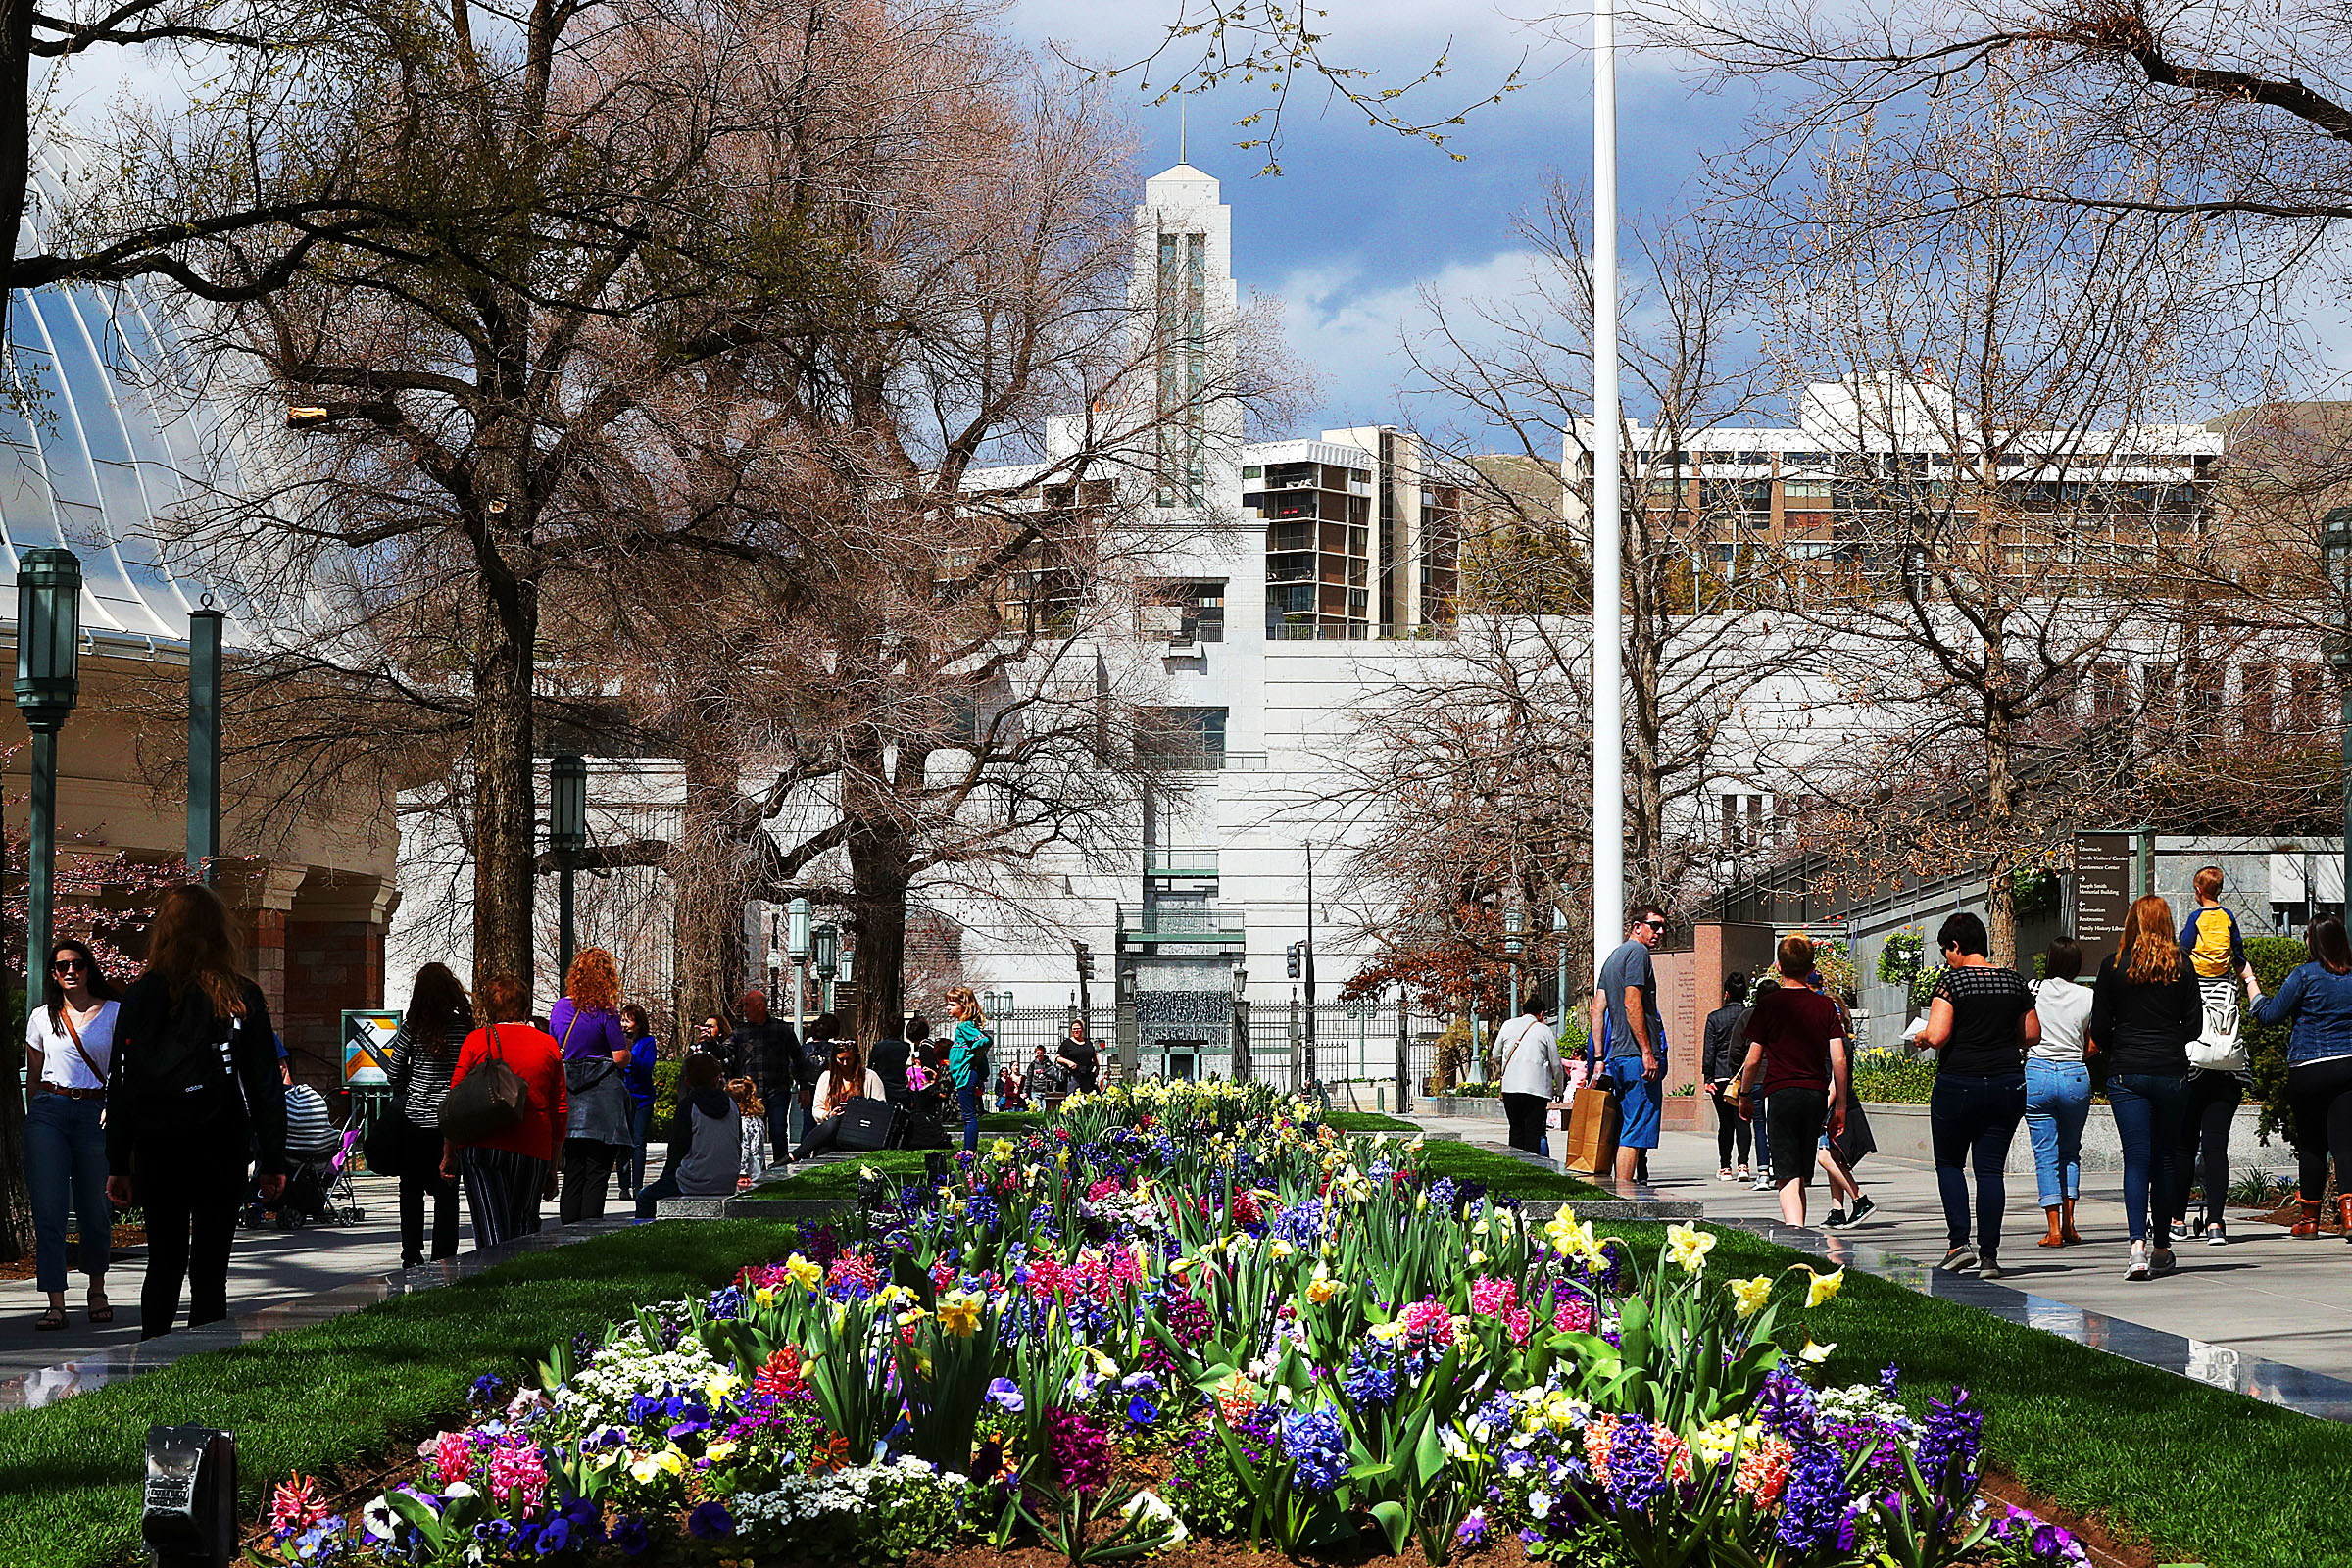 Flowers bloom on Temple Square of The Church of Jesus Christ of Latter-day Saints in Salt Lake City on Friday, April 5, 2019. In the background is the Conference Center.